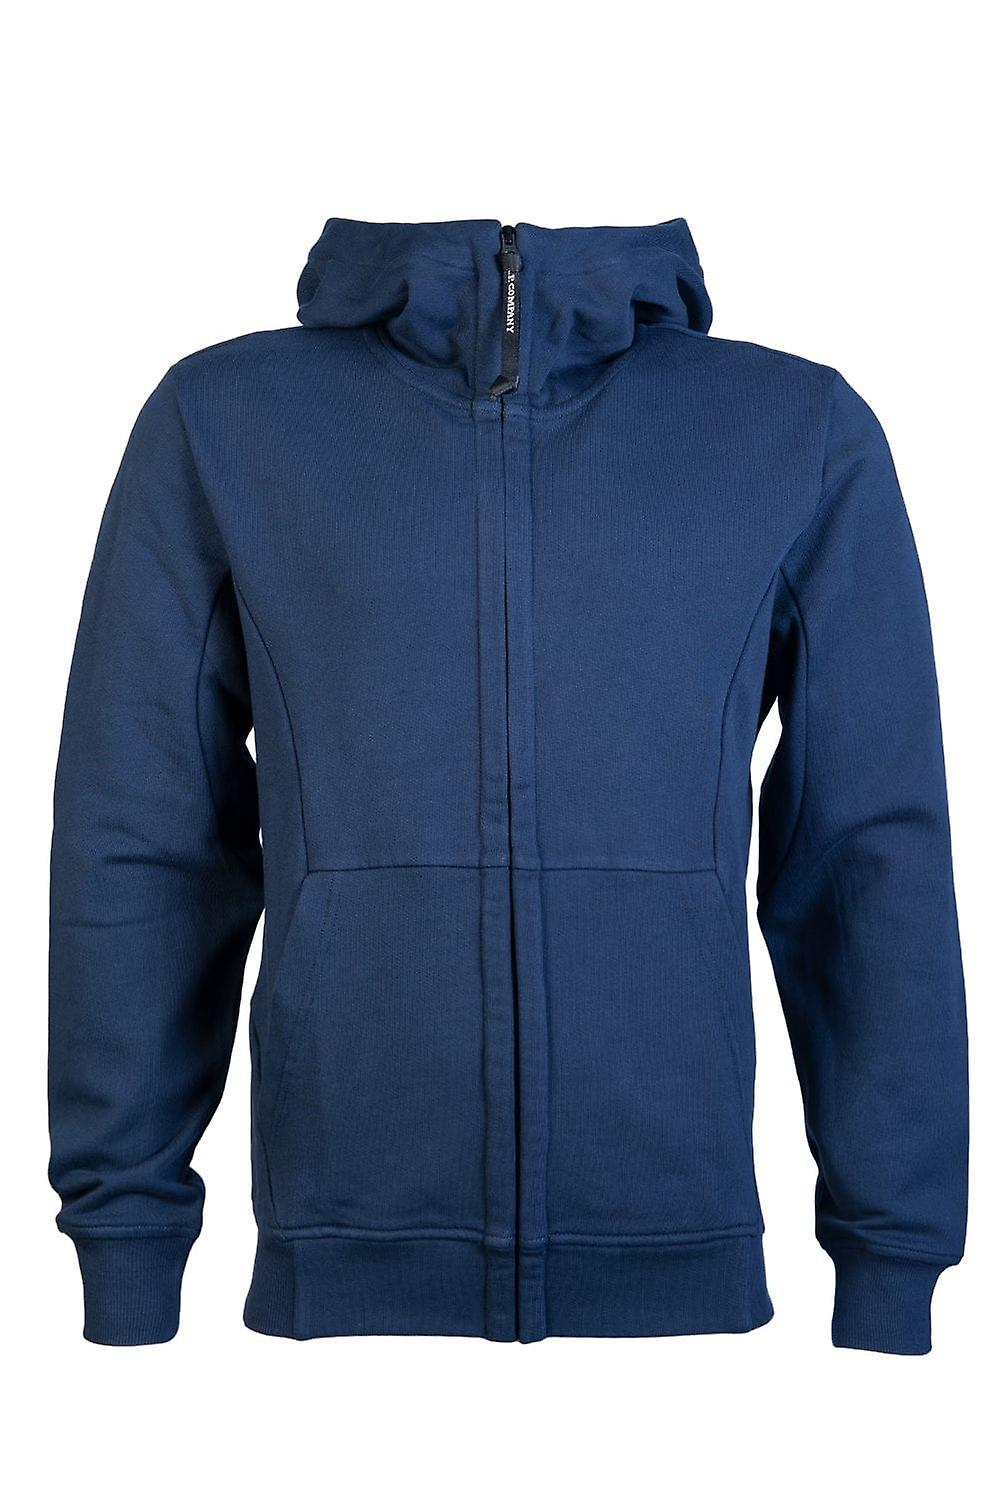 CP Company Zip Up / Button Cardigan Hoody Sweatshirt MSS009A 005160W